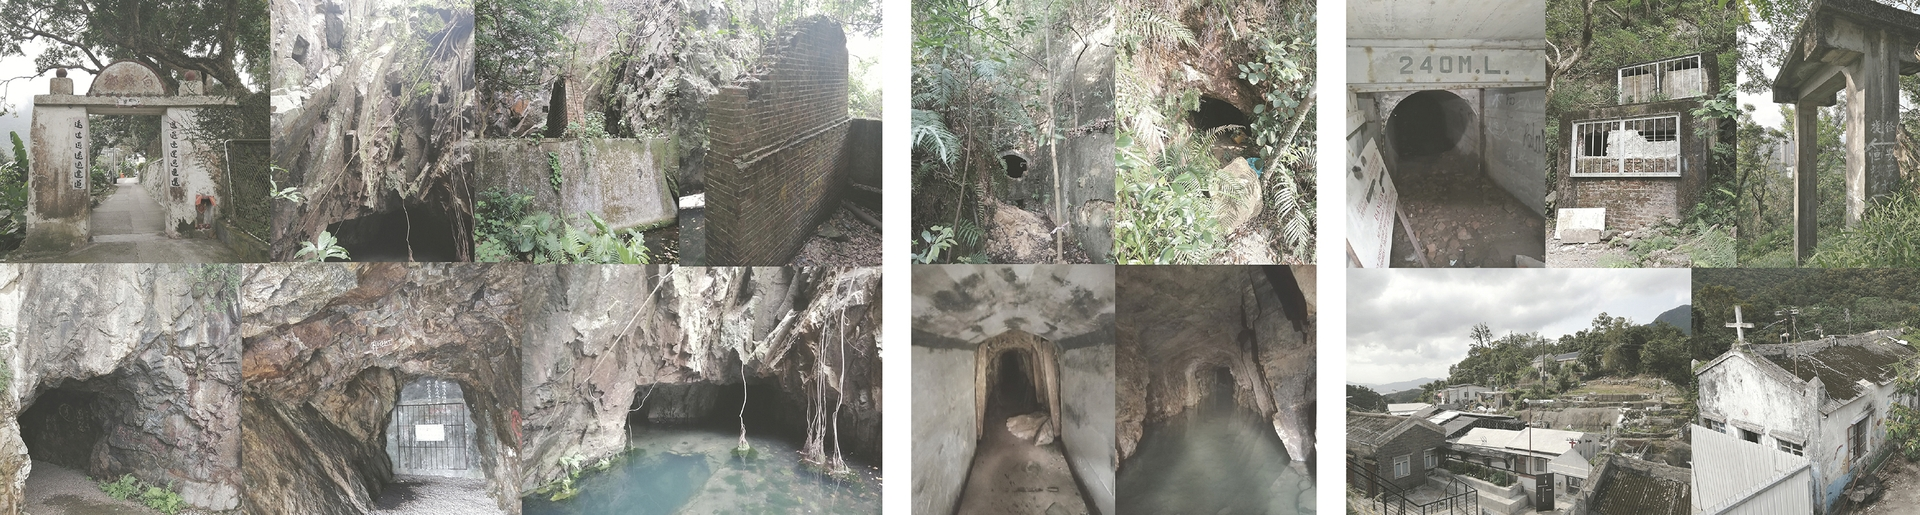 Enlarge Photo: Cultural Landscape in Hong Kong: Conservation Strategies for Abandoned Mining Tunnels. By CHAN Tsz Wa Koni.